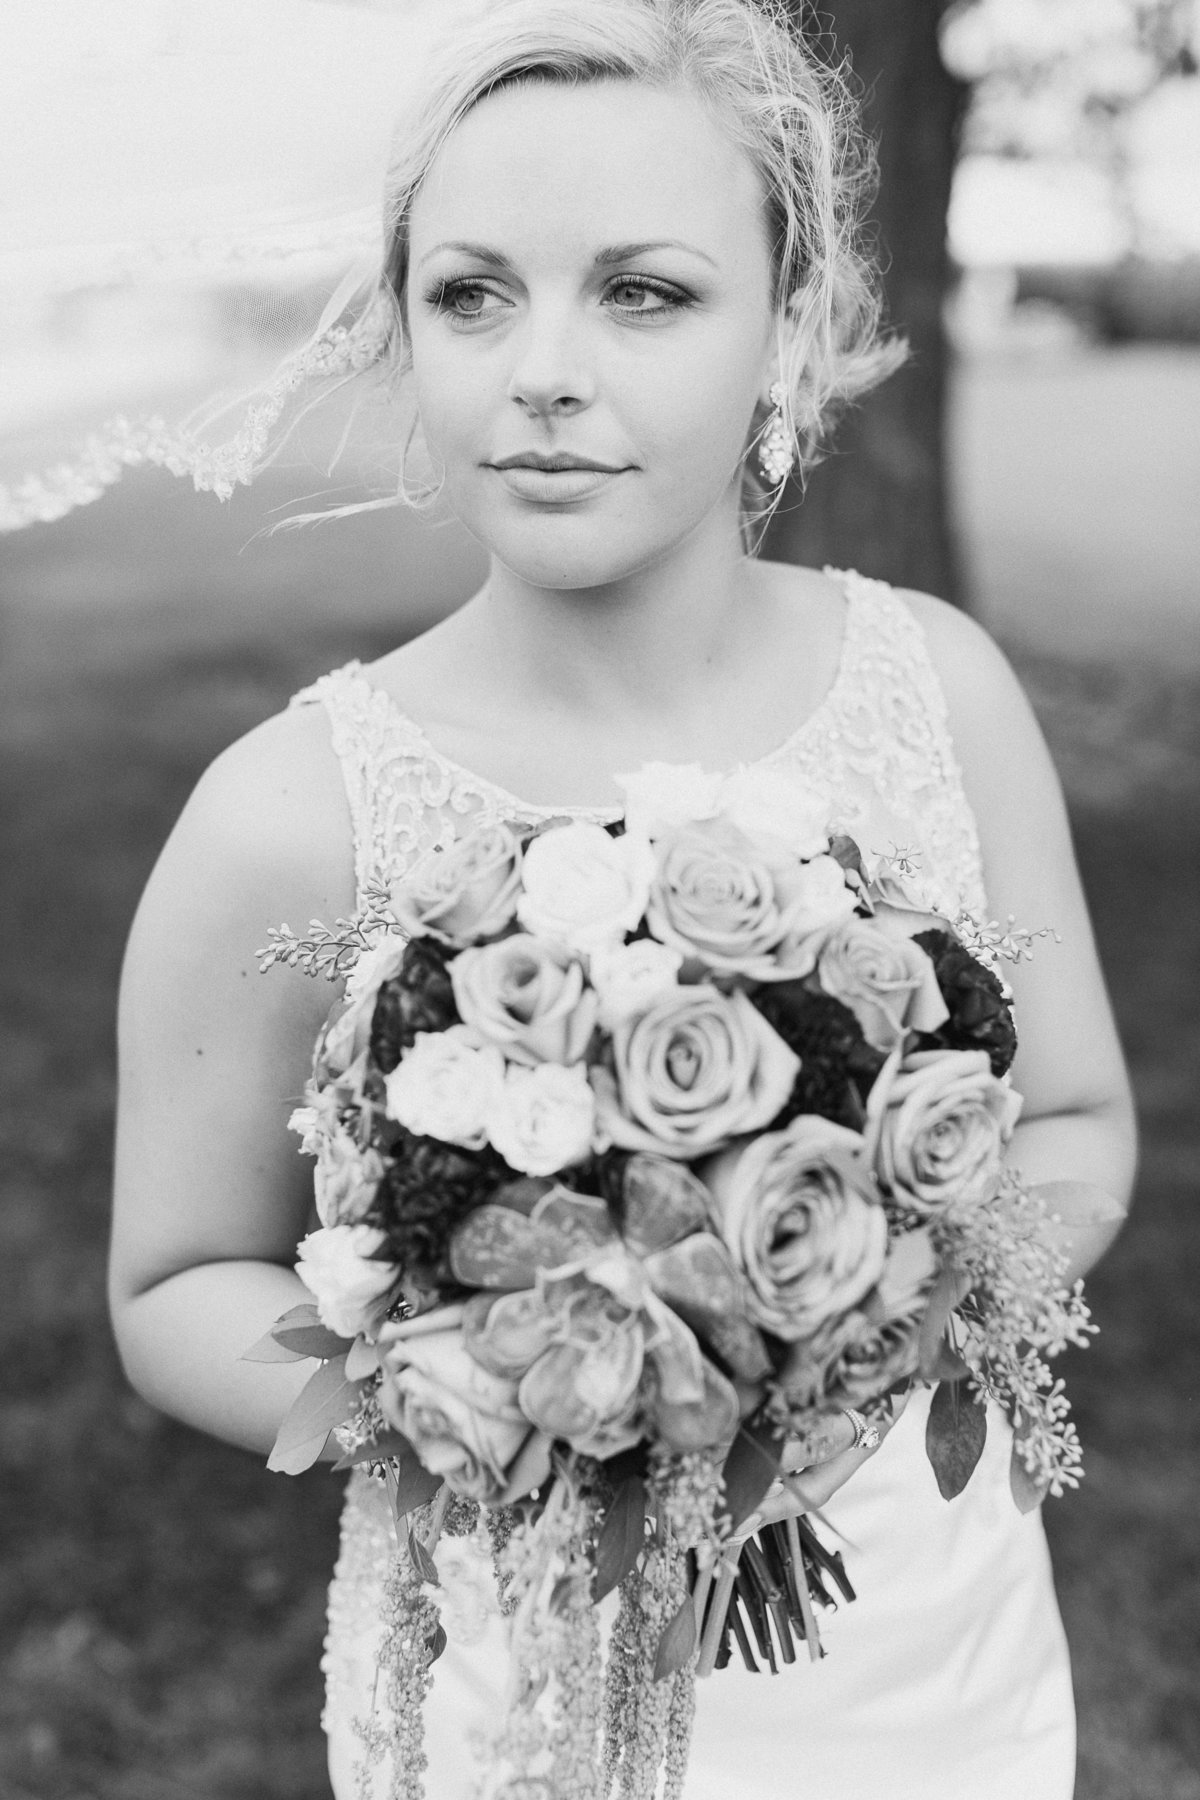 wedding photographer peoria il stephanie bartman-08